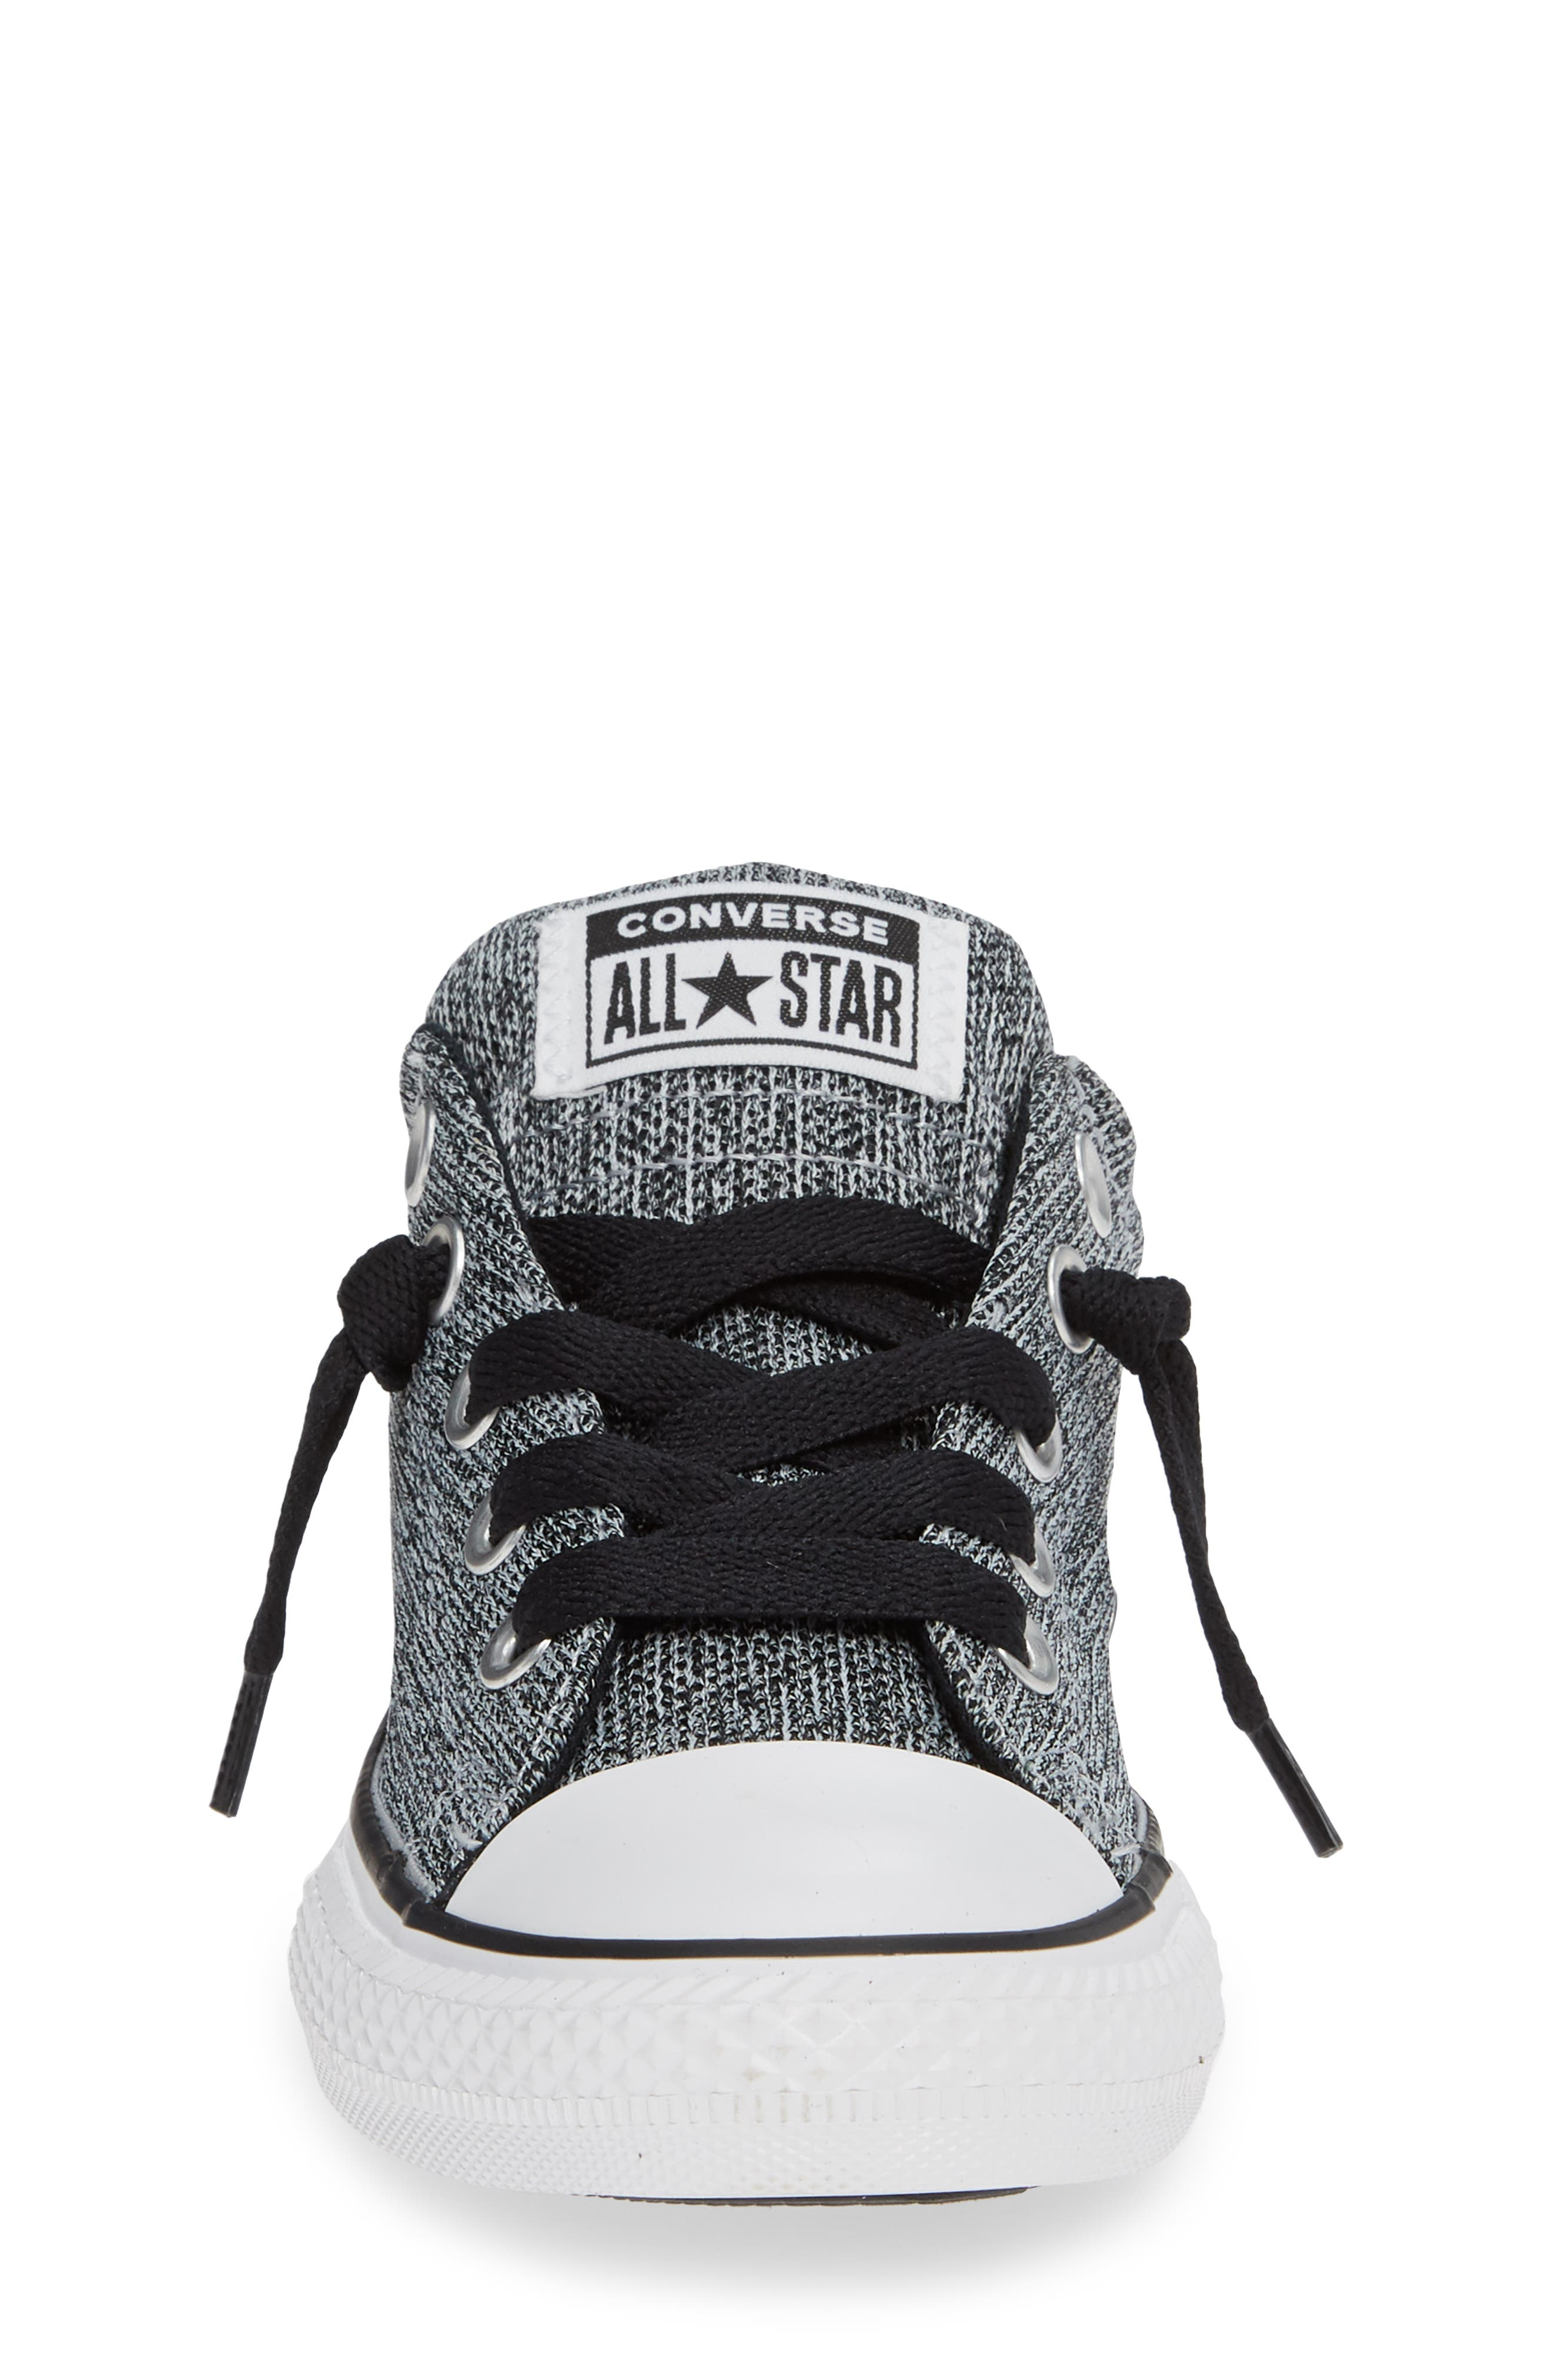 CONVERSE, All Star<sup>®</sup> Graphite Textured Street Low Top Sneaker, Alternate thumbnail 4, color, WOLF GREY